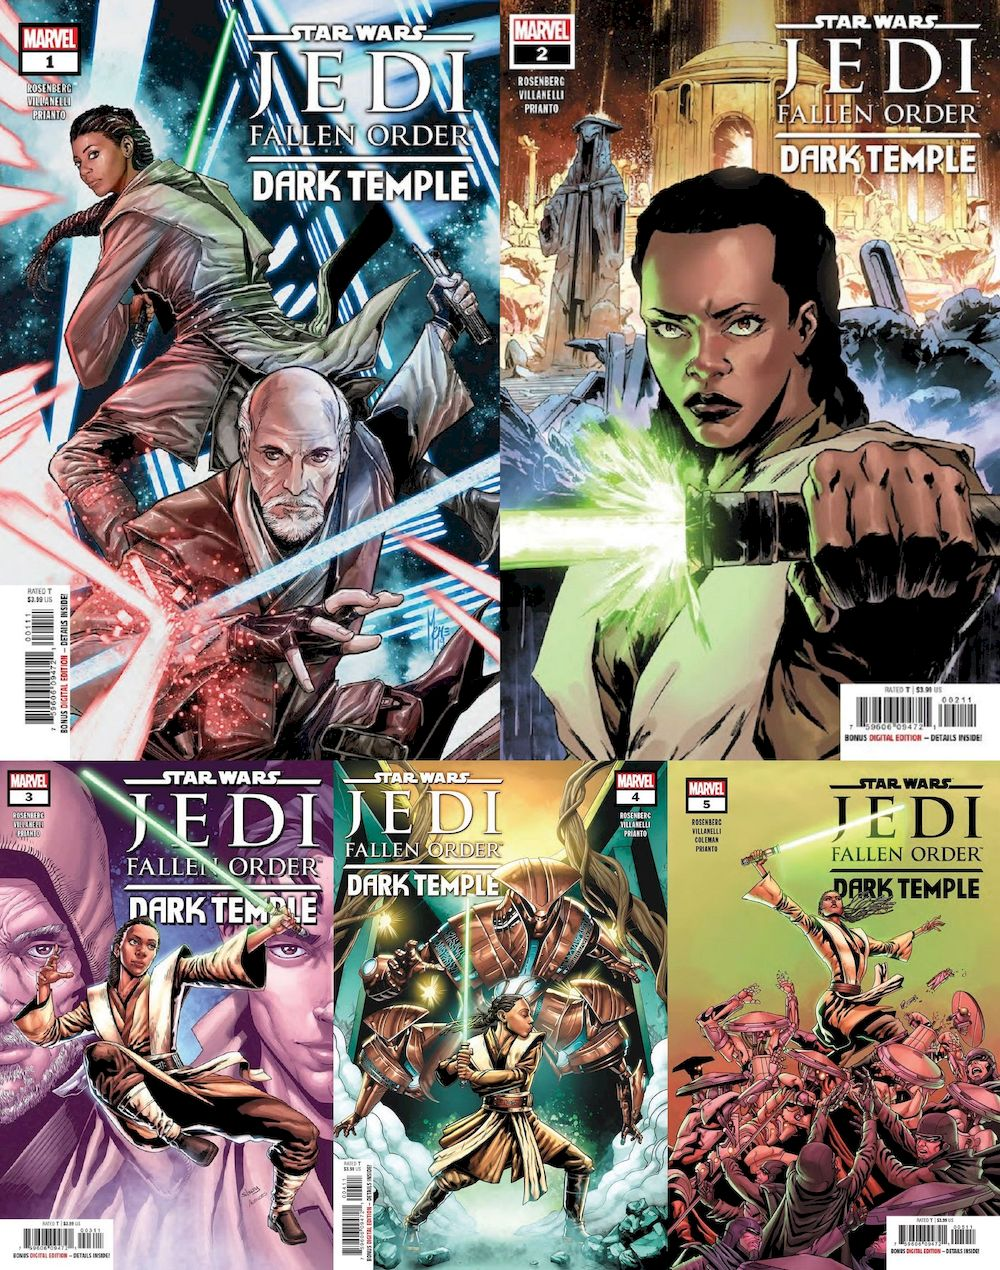 STAR WARS JEDI FALLEN ORDER DARK TEMPLE #1 - #5 (OF 5) SET